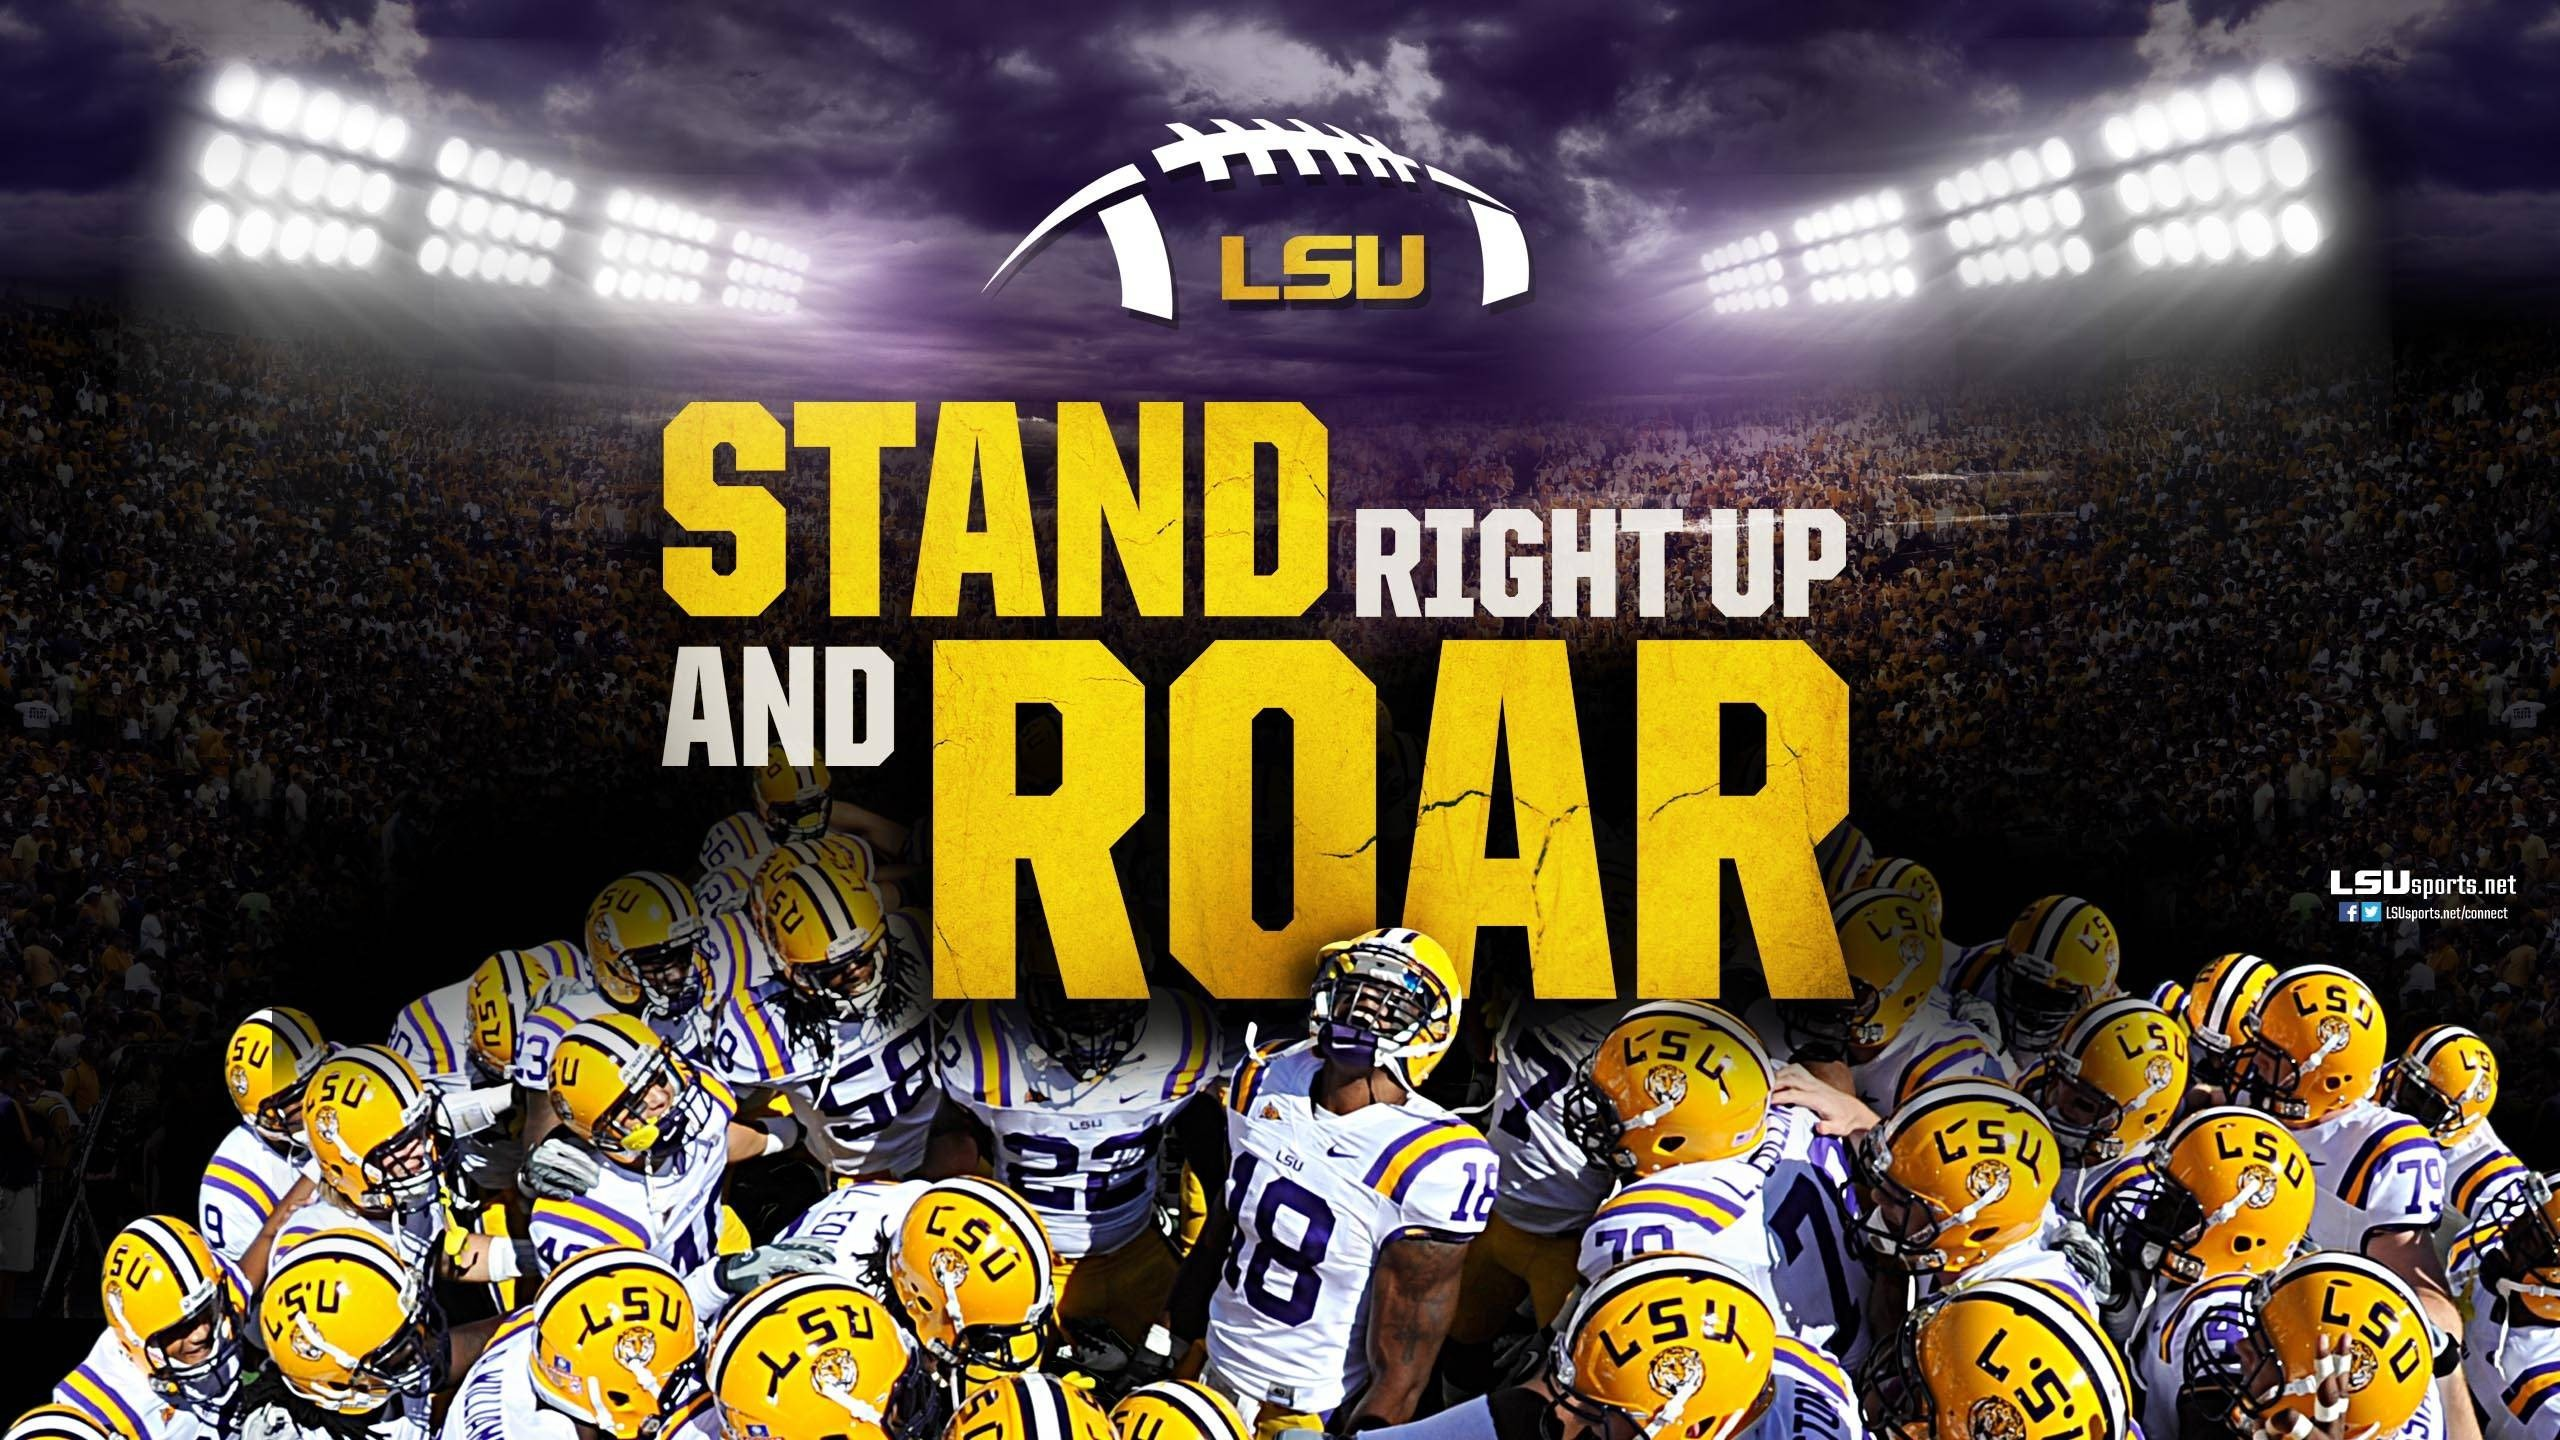 Lsu Football Wallpaper 2018 (63+ images)